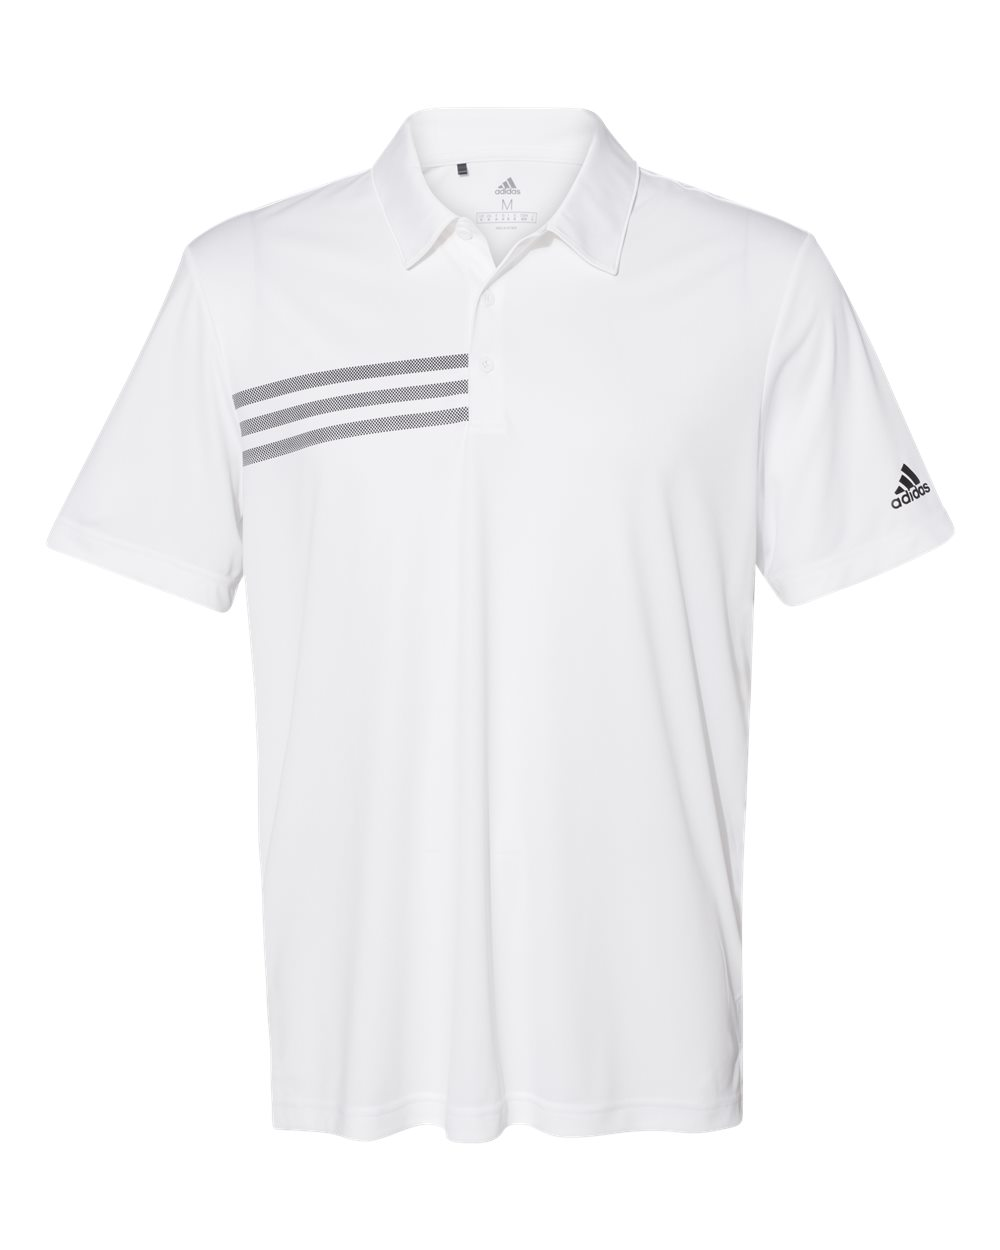 3-Stripes Chest Sport Shirt-Adidas